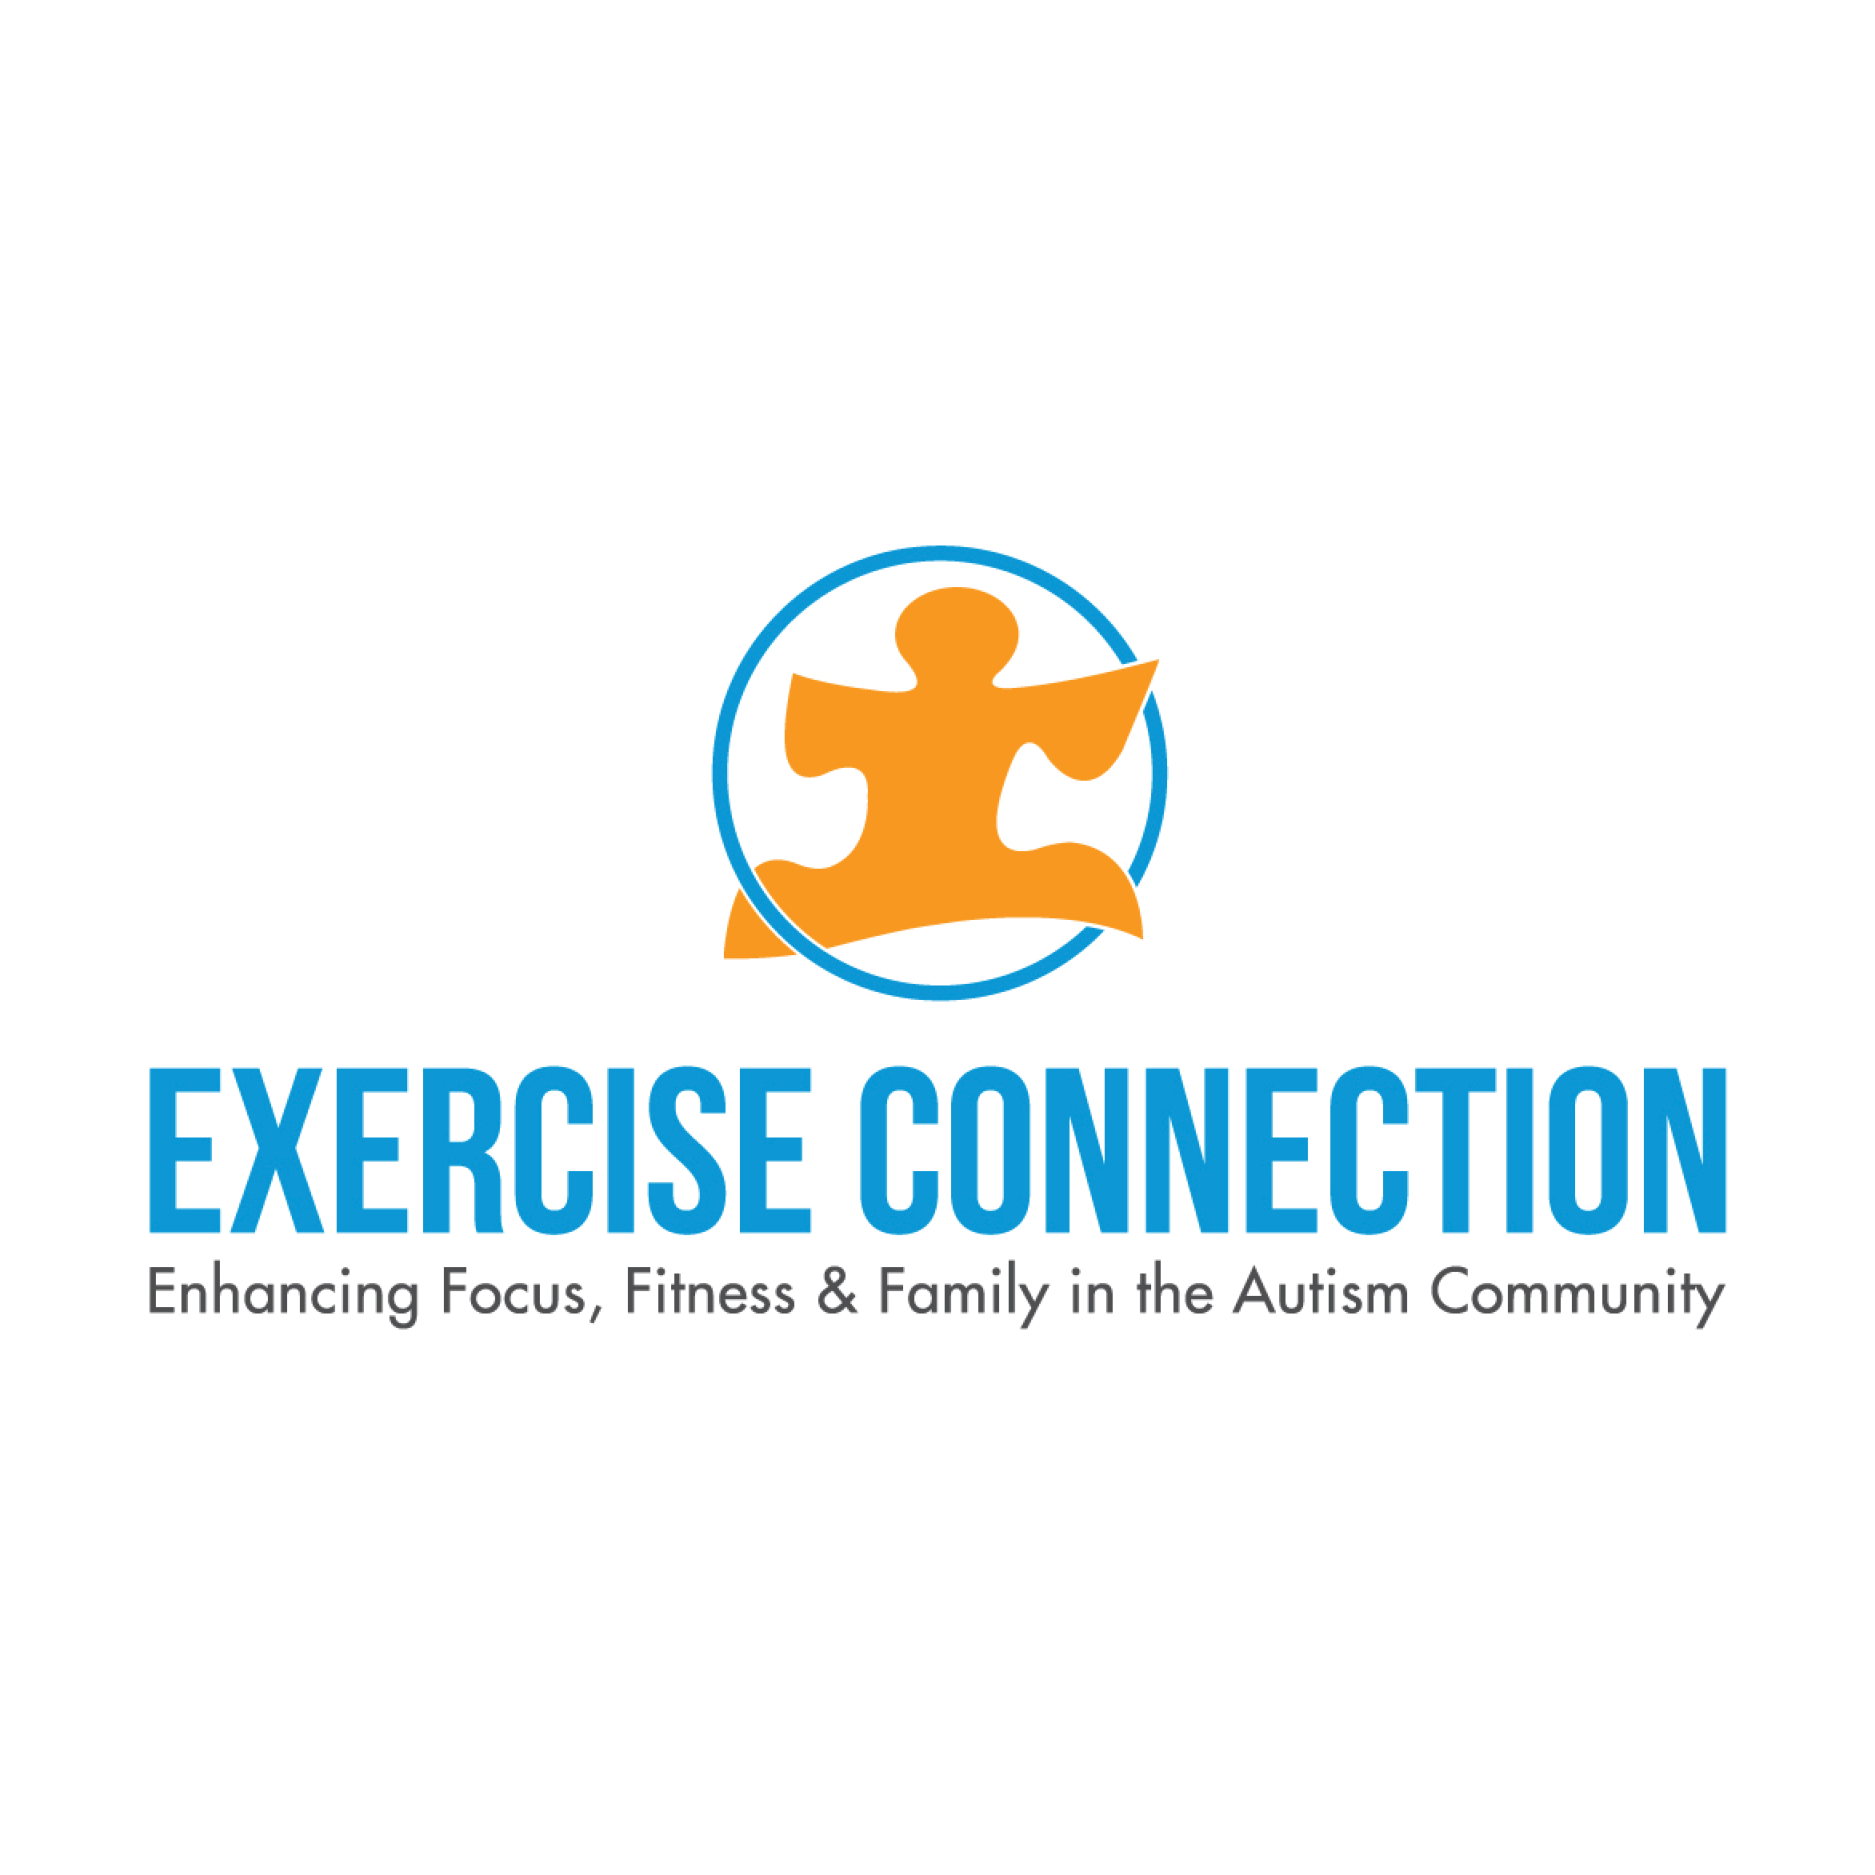 Exercise Connection